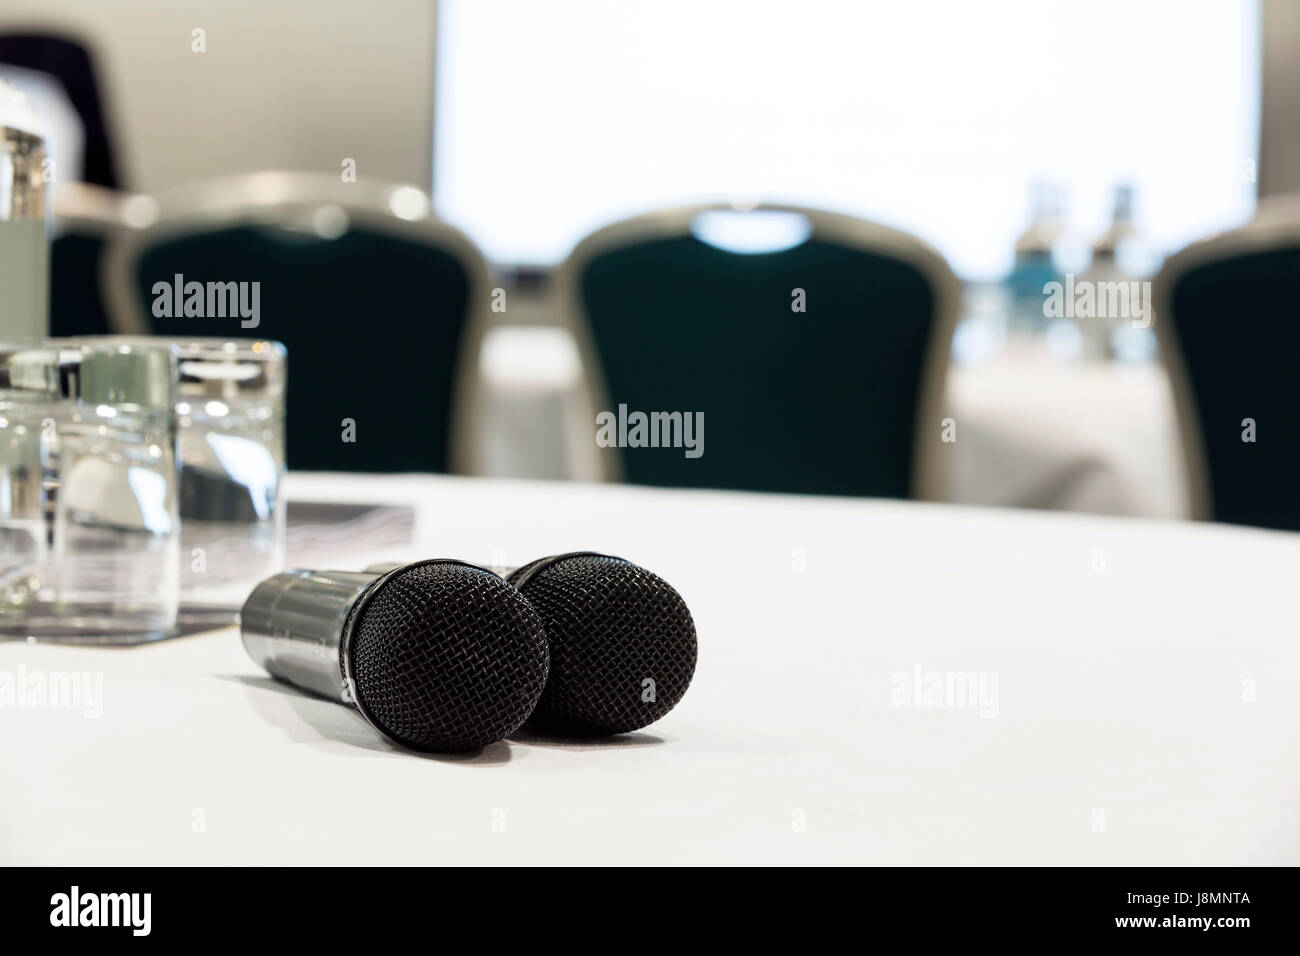 Two microphones on a white table used for Q&A at a conference or meeting venue. Chairs and a screen in the background - Stock Image